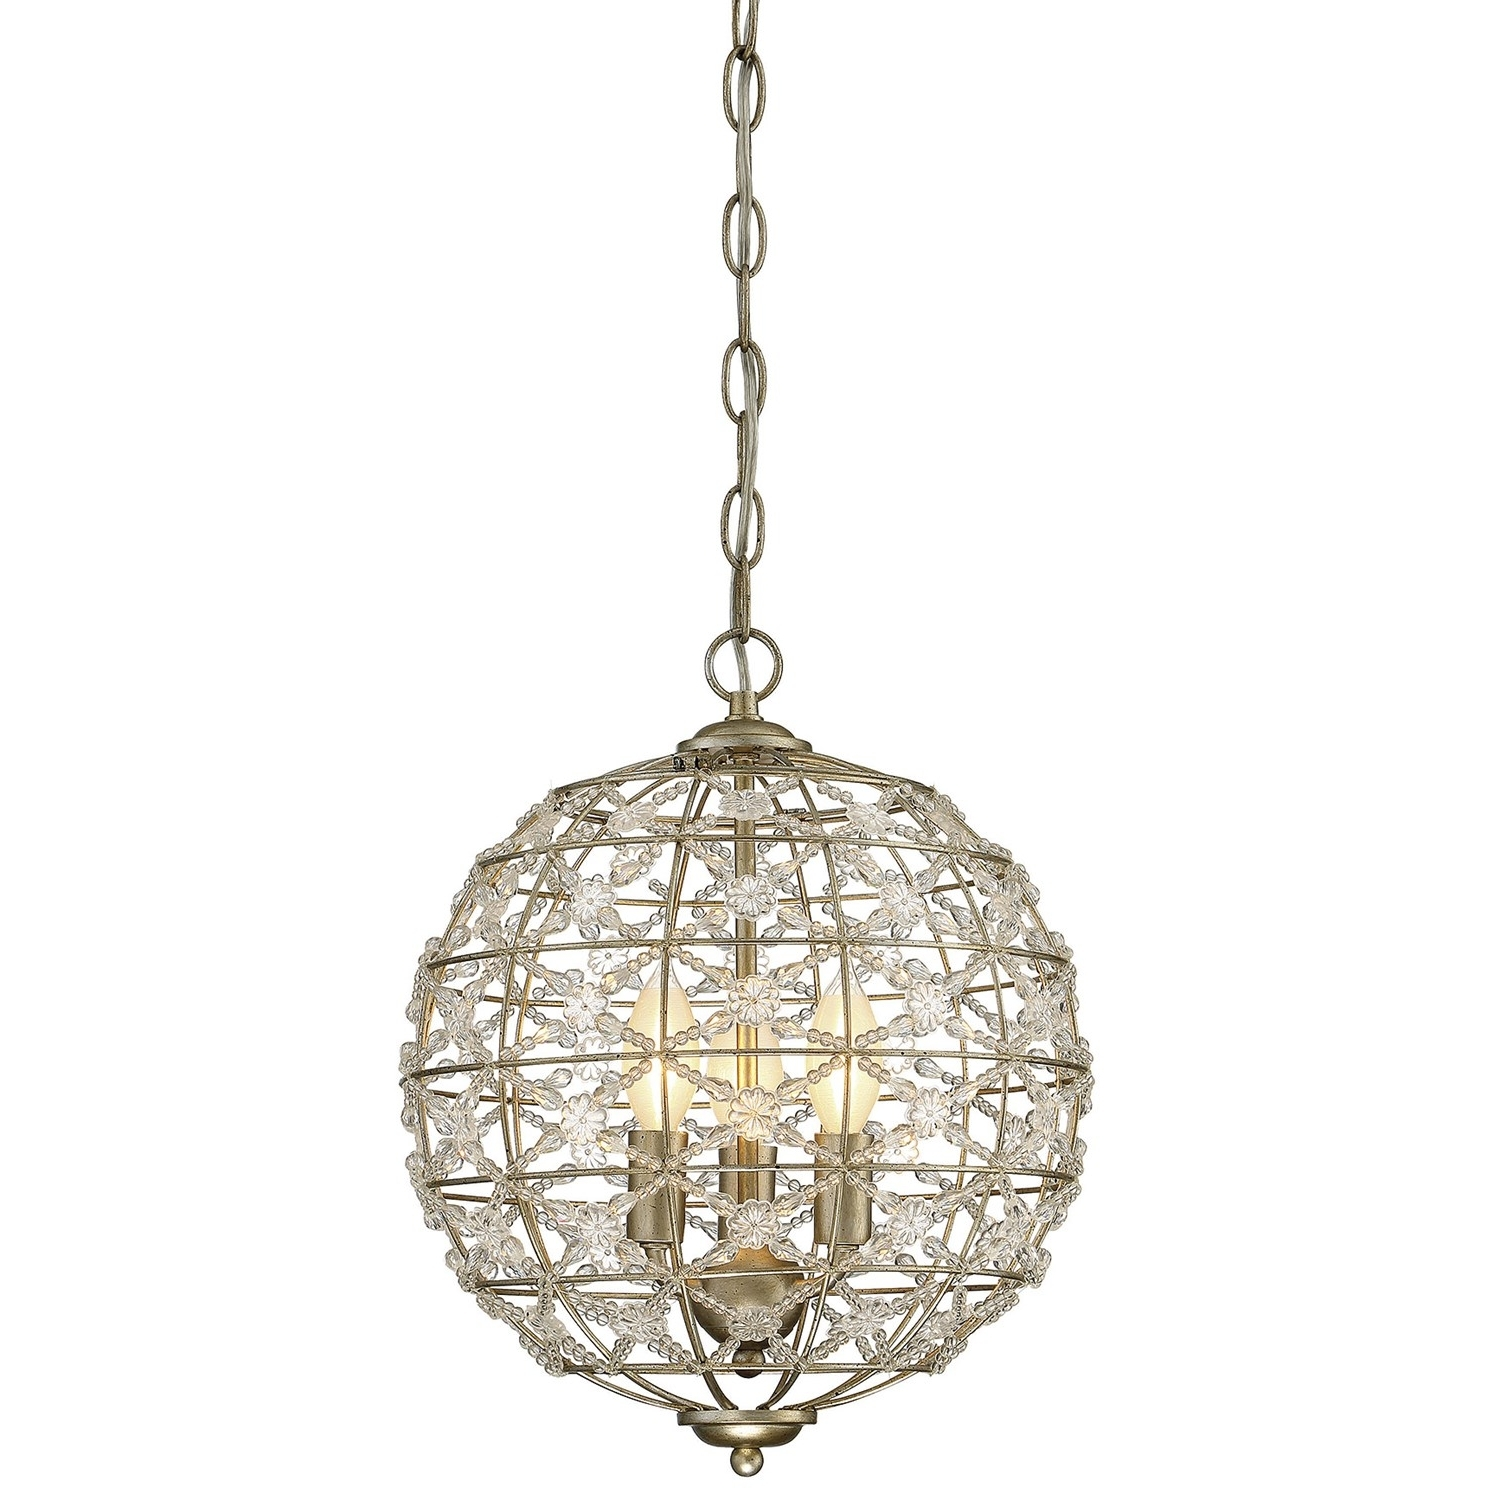 Best And Newest Chandeliers Design : Awesome Savoy House Chandelier Light Mini In With Turquoise Lantern Chandeliers (View 1 of 20)